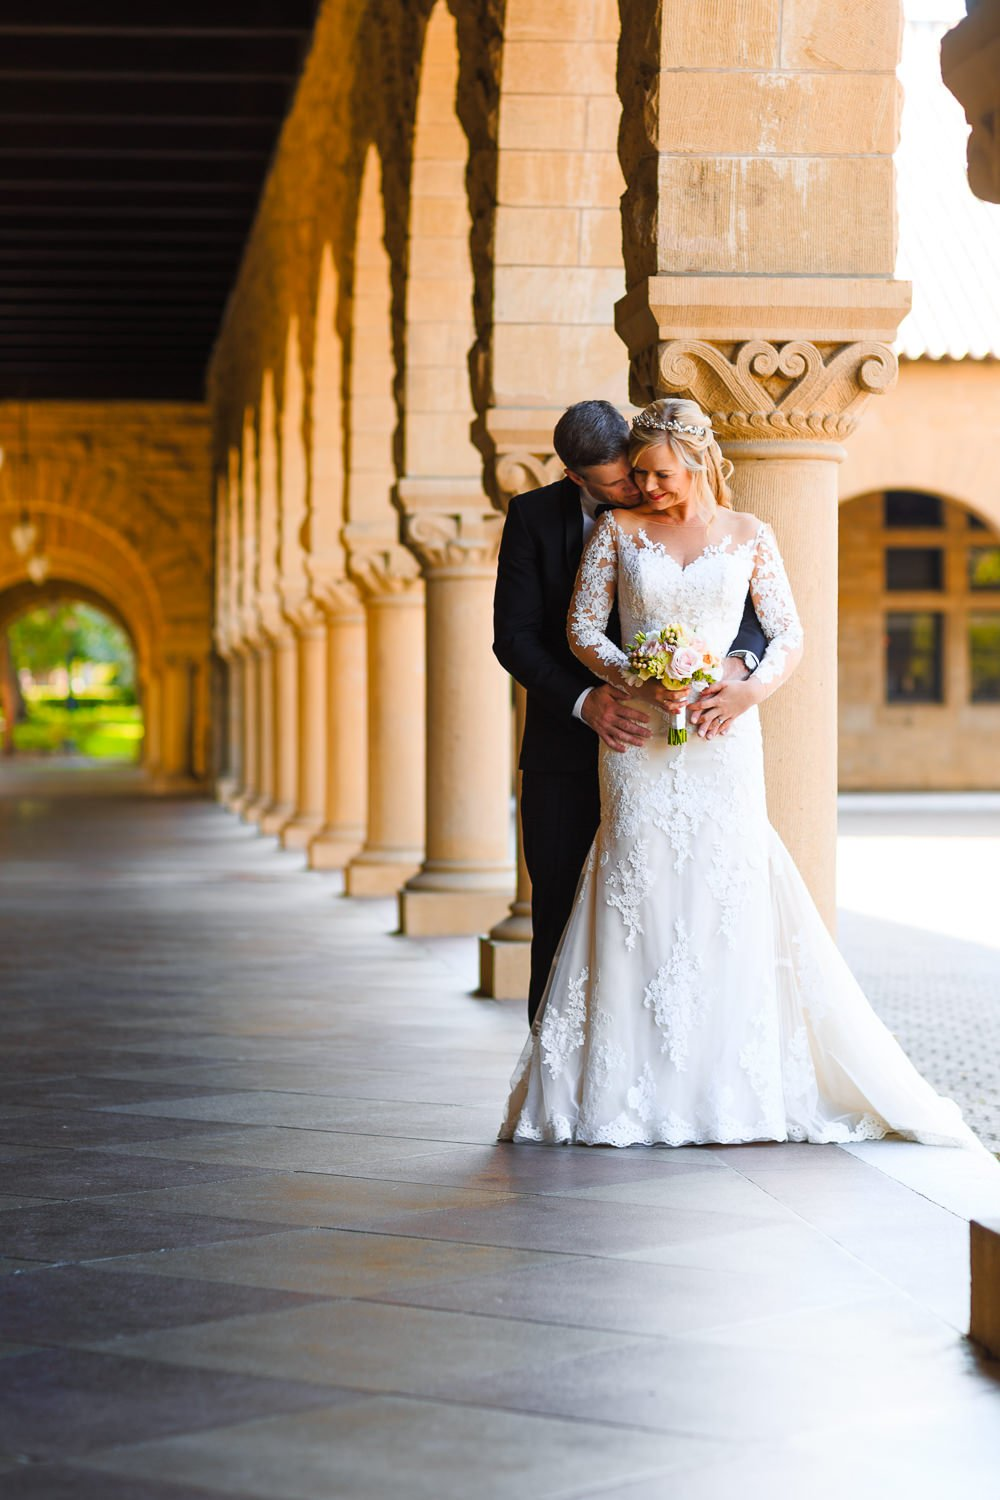 stanford-university-wedding-romantic-portraits-arpit-mehta-san-francisco-photographer-6